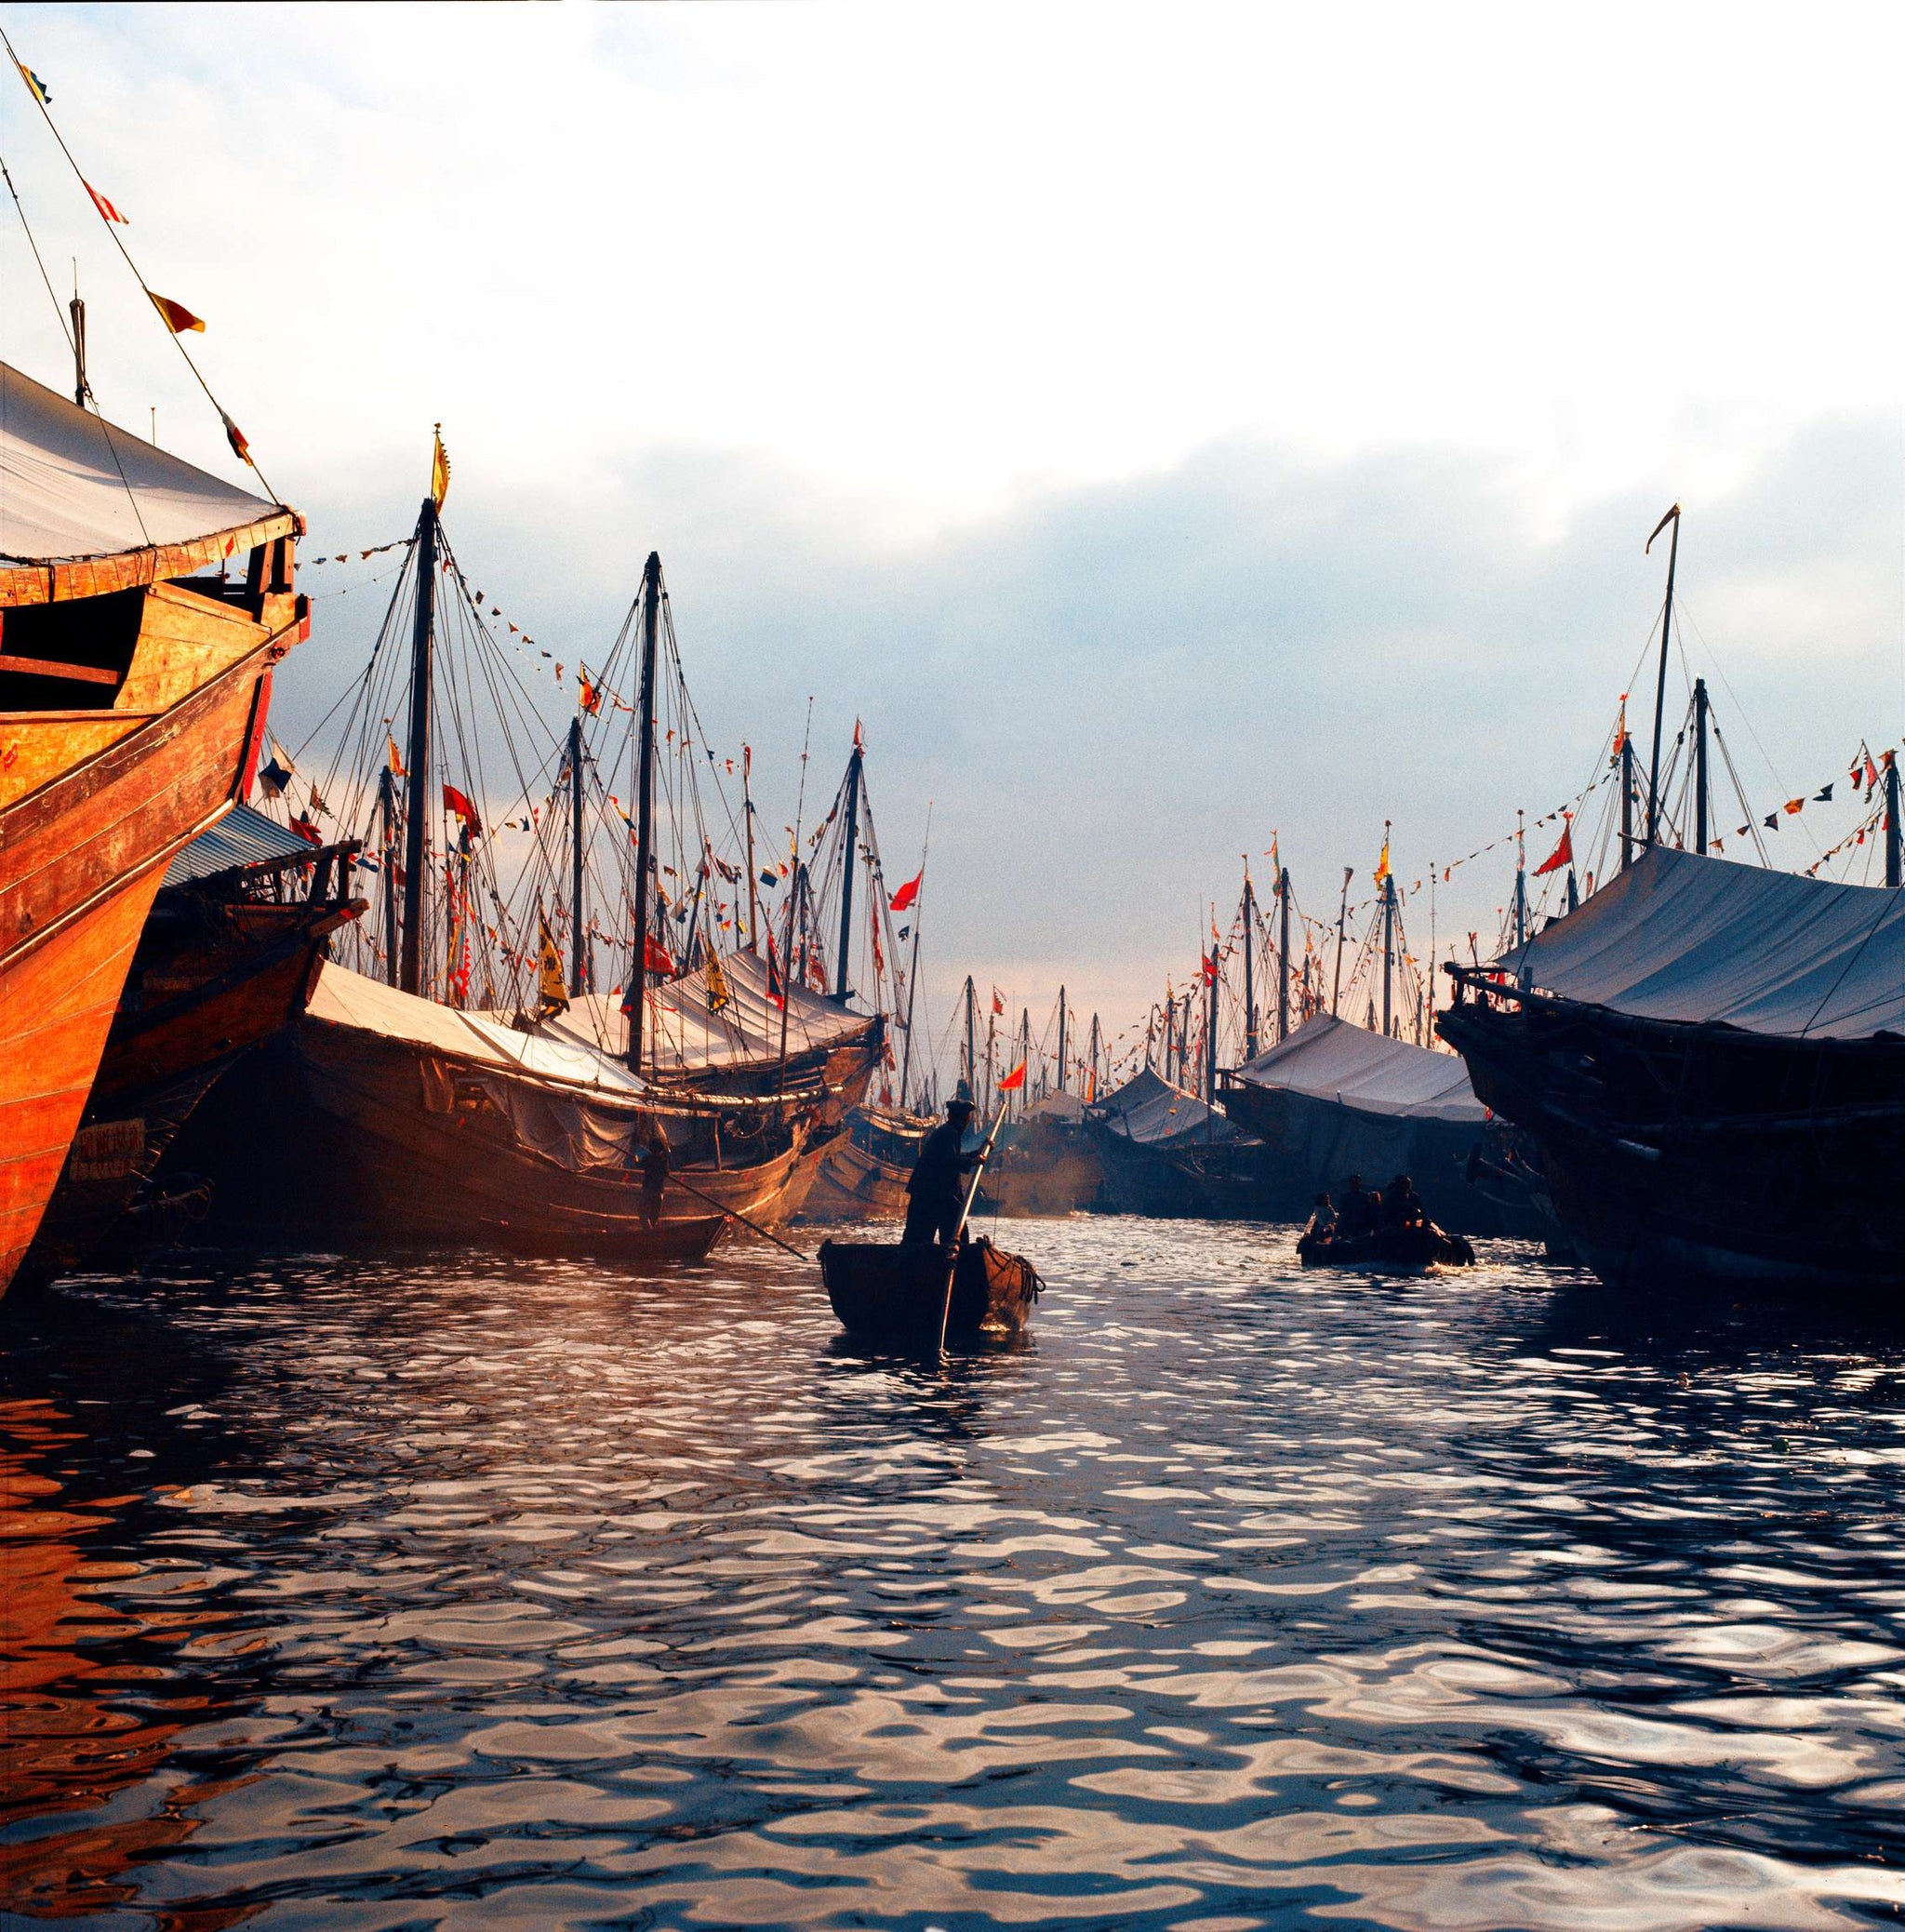 The story behind the Sampan designs